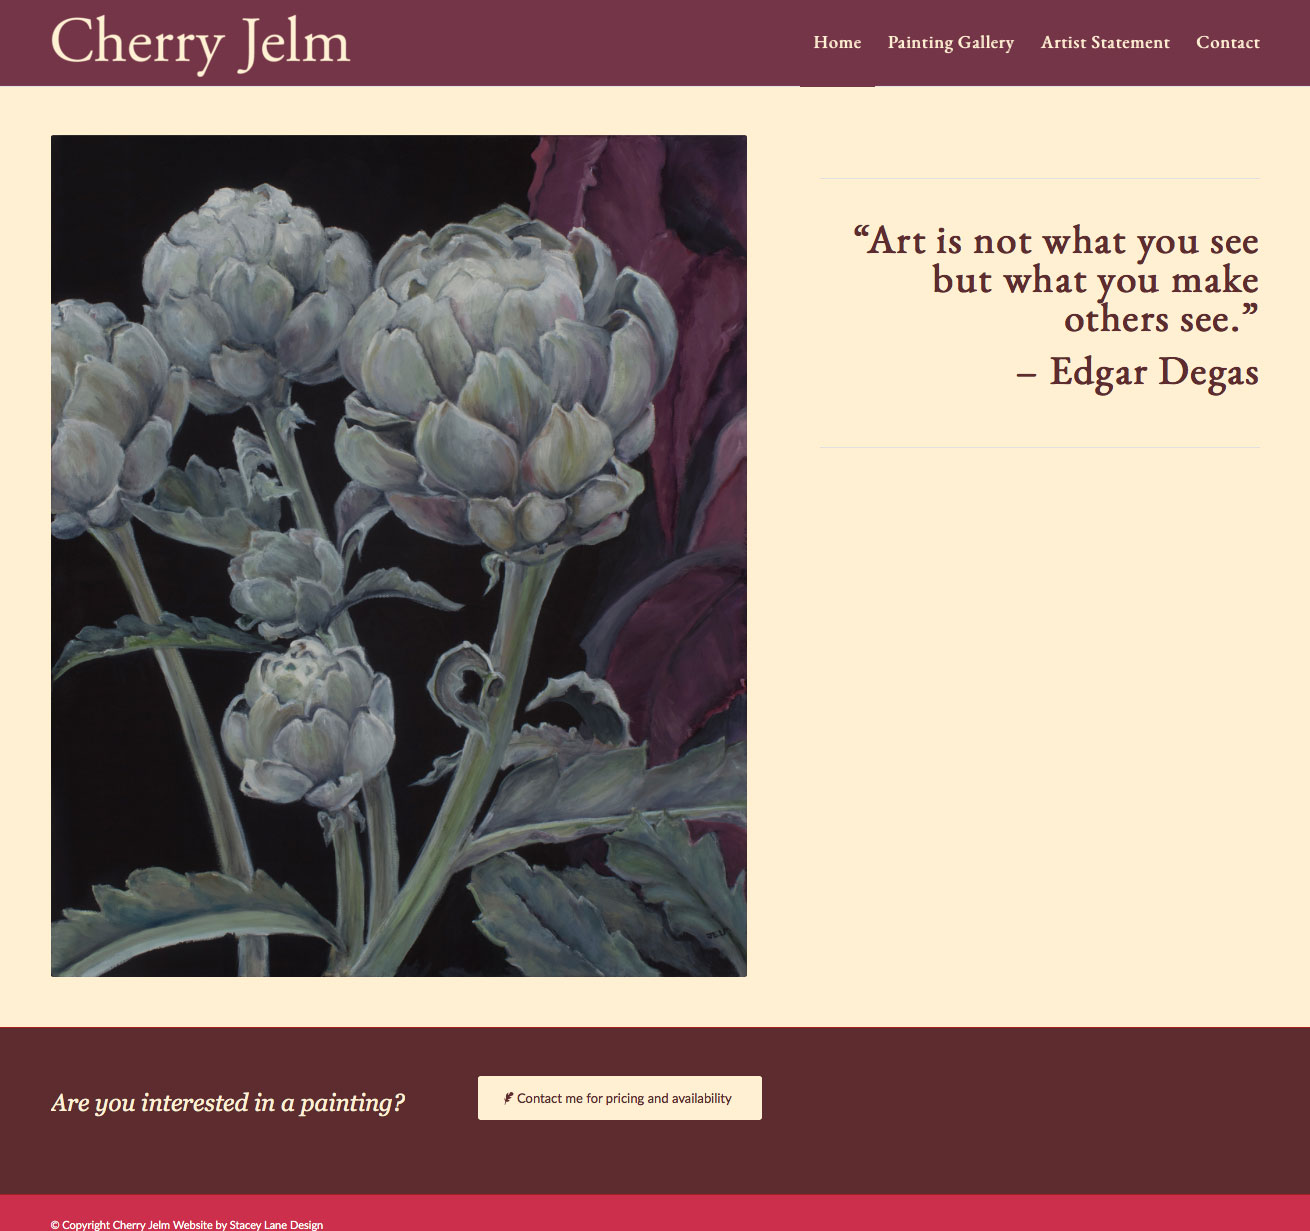 Cherry Jelm website design